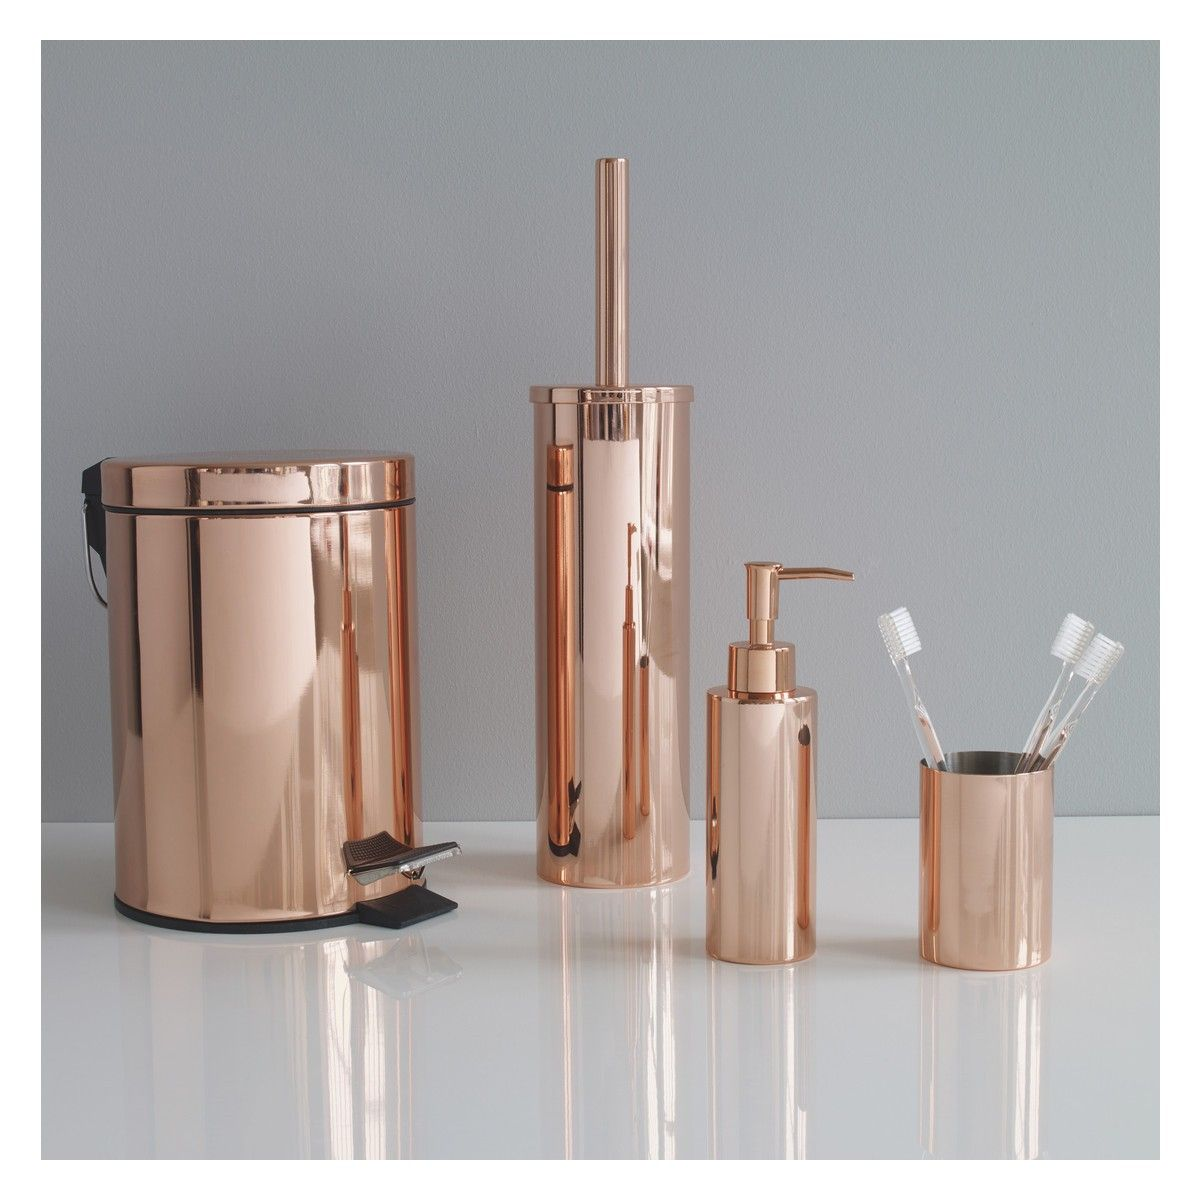 Photo of COLLIER Copper mirror finish metal bathroom beaker